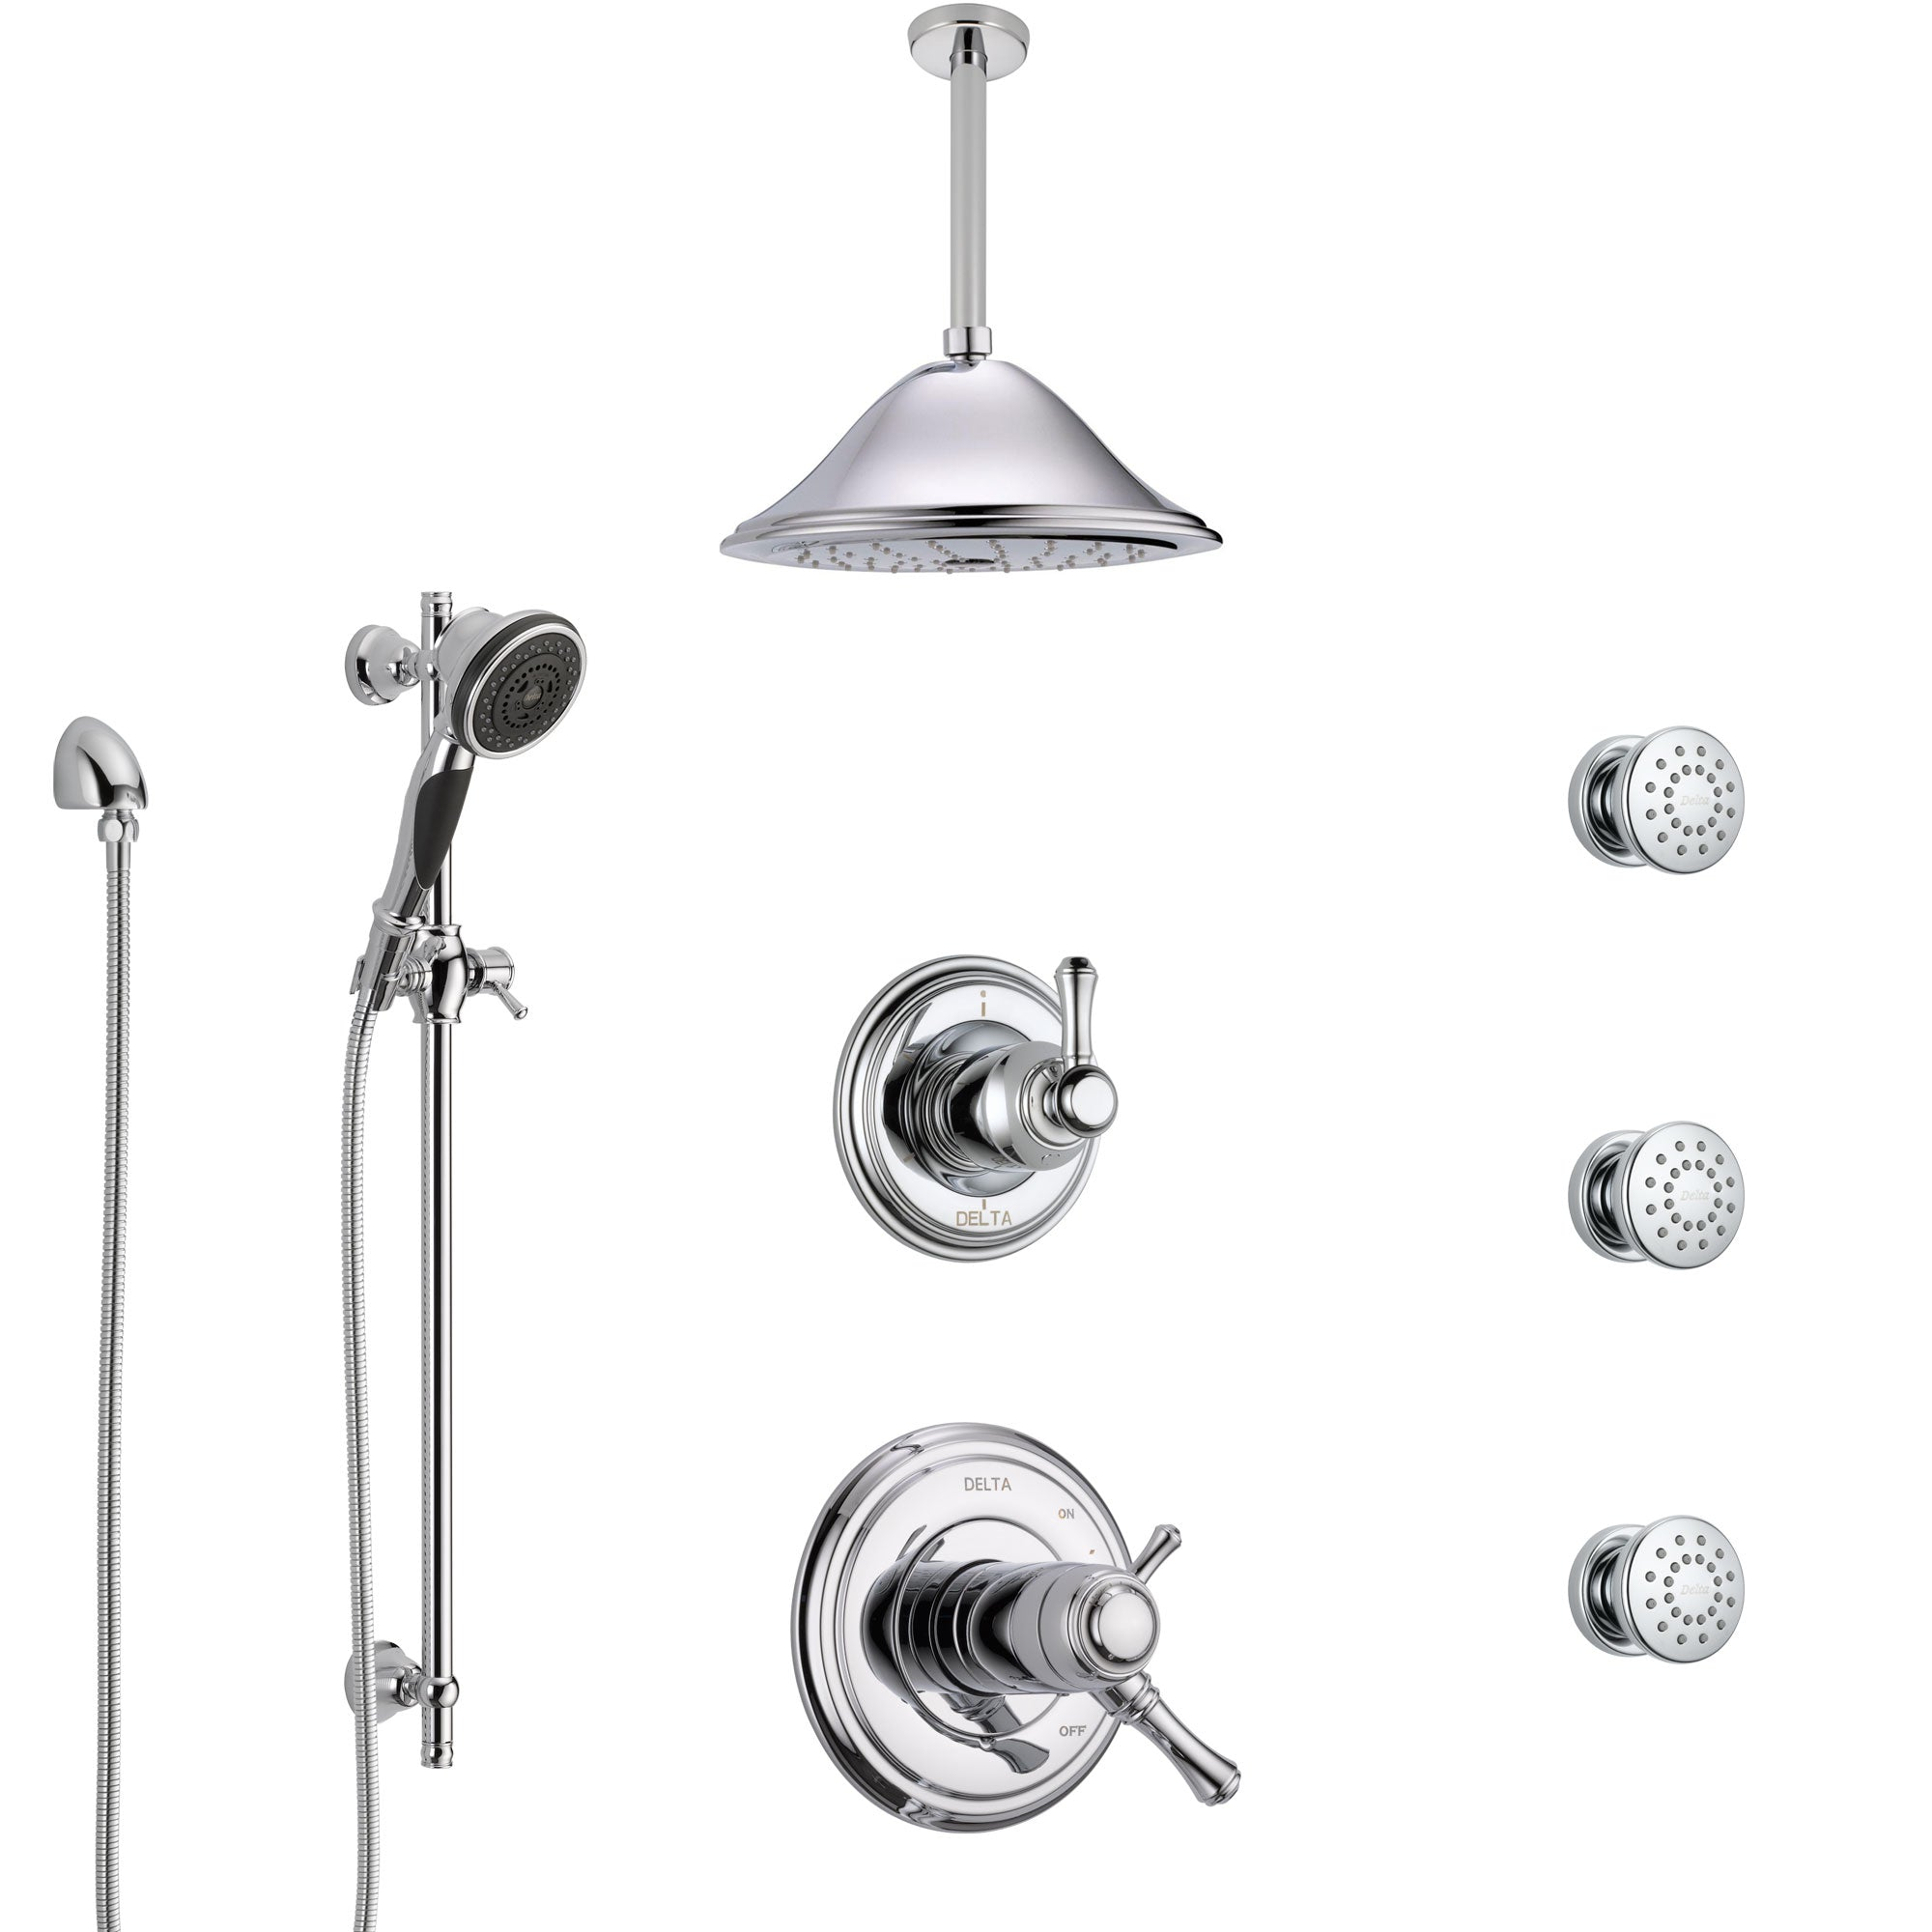 Delta Cassidy Chrome Shower System with Dual Thermostatic Control, Diverter, Ceiling Mount Showerhead, 3 Body Sprays, and Hand Shower SS17T9717